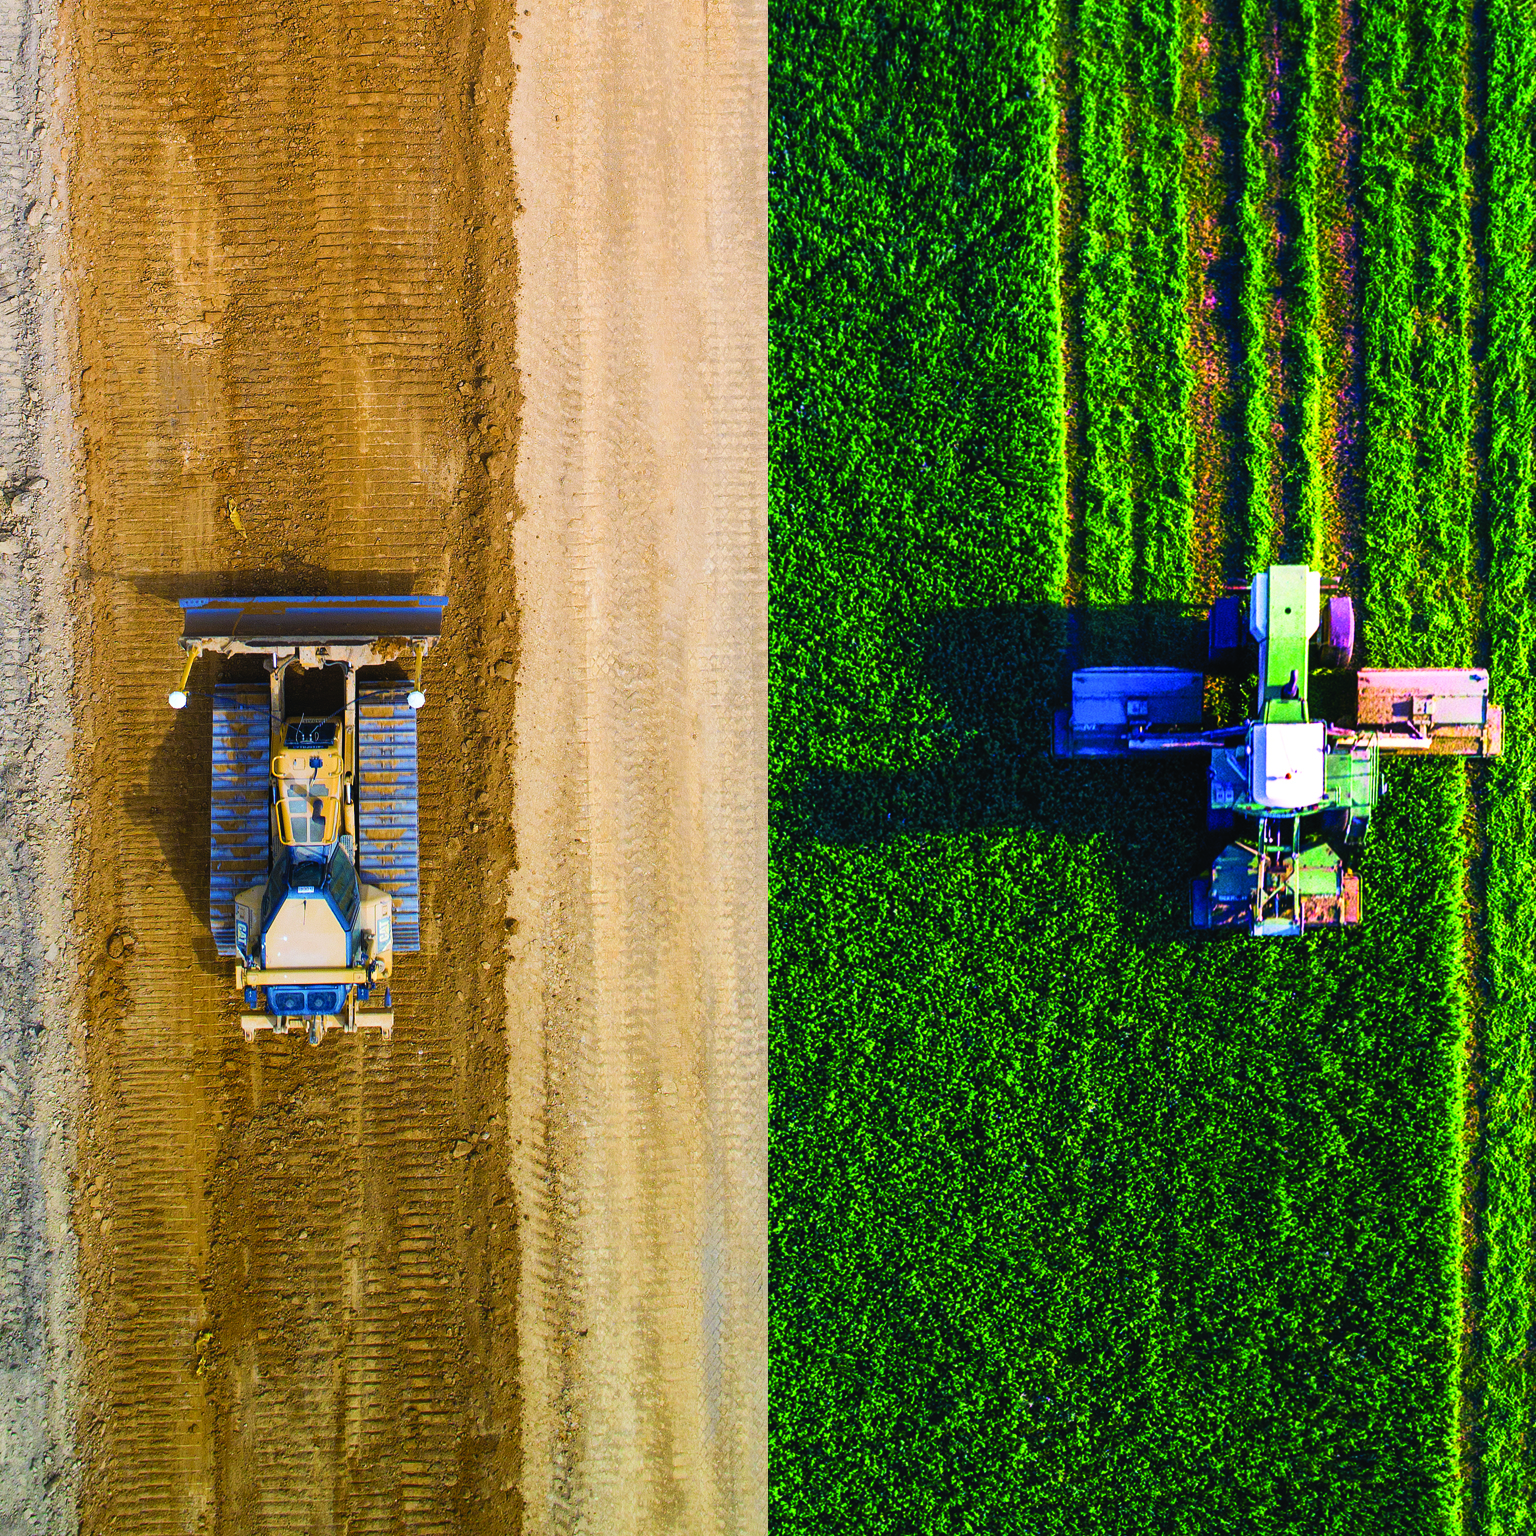 How OEMs can seize the high-tech future in agriculture and